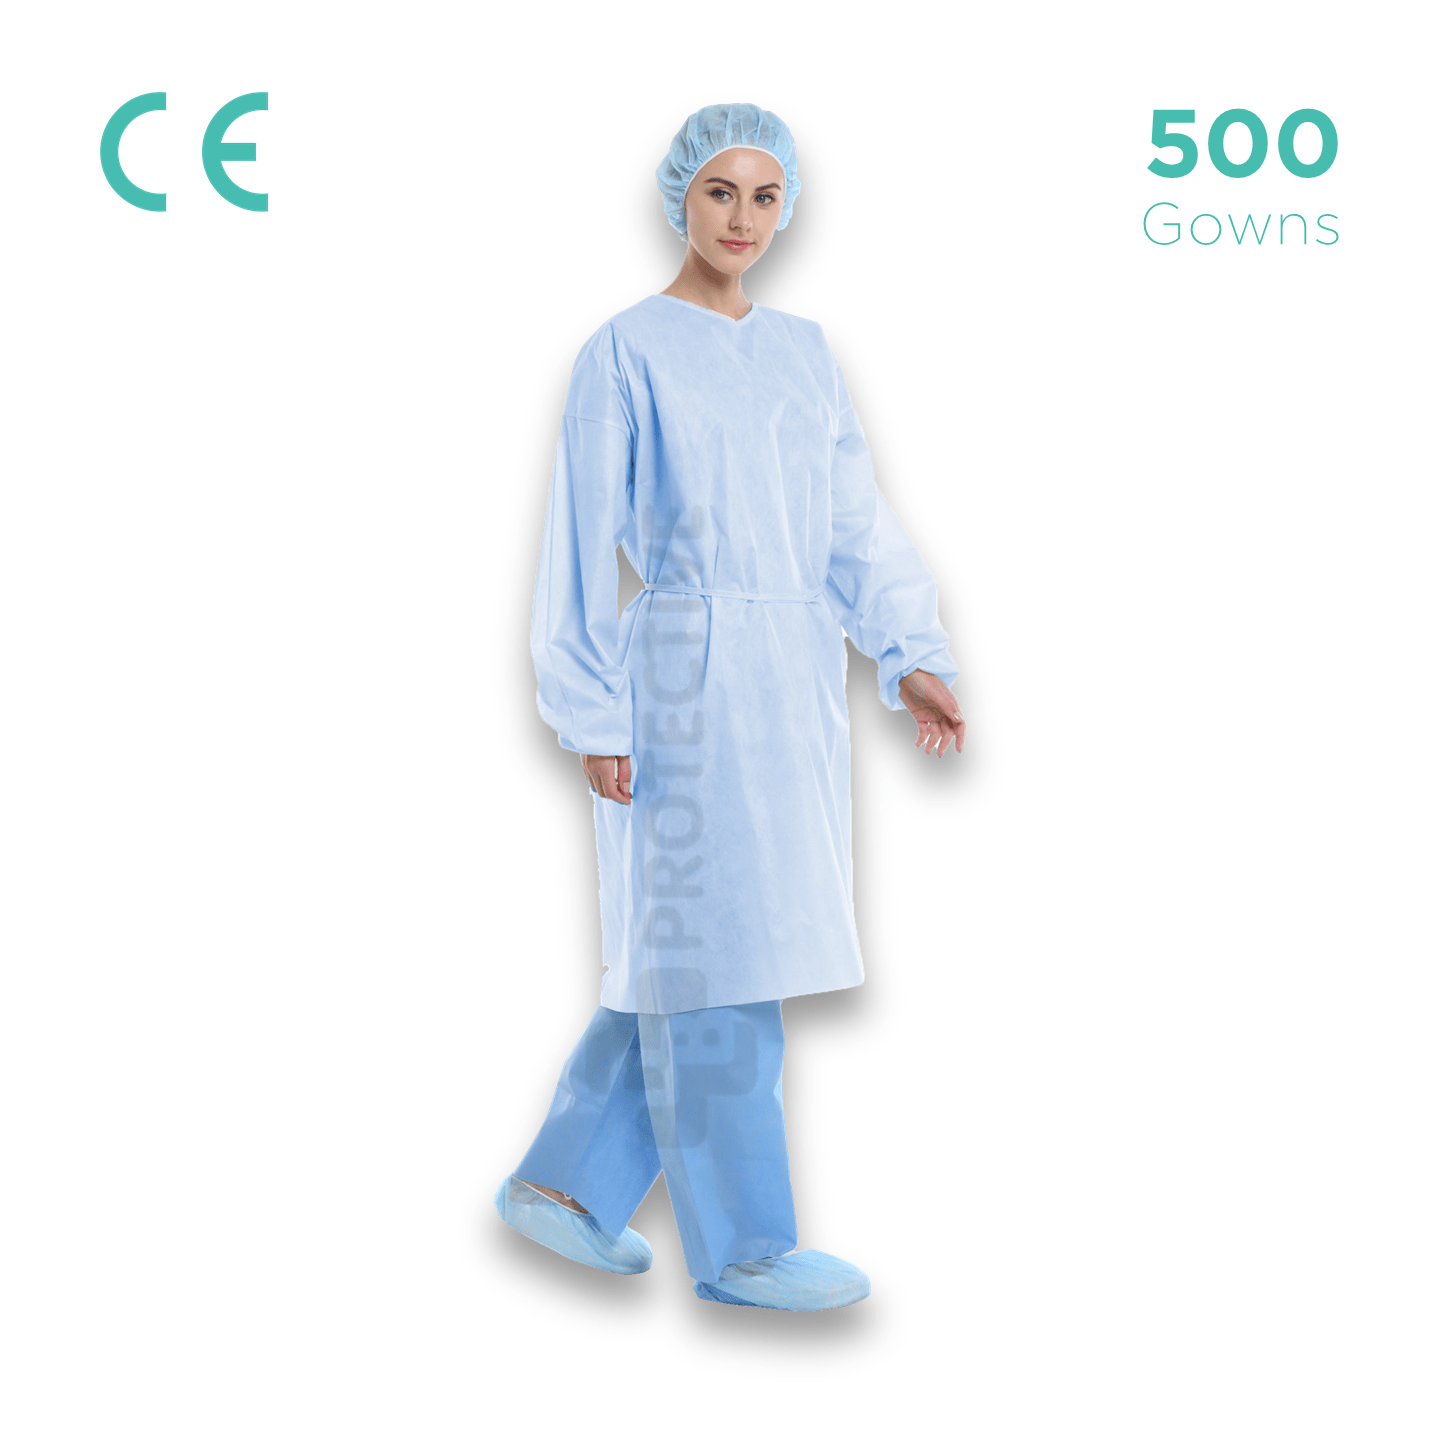 PP Disposable Gowns AAMI Level 1 - Pack of 500. - USA Medical Supply - DB Protective